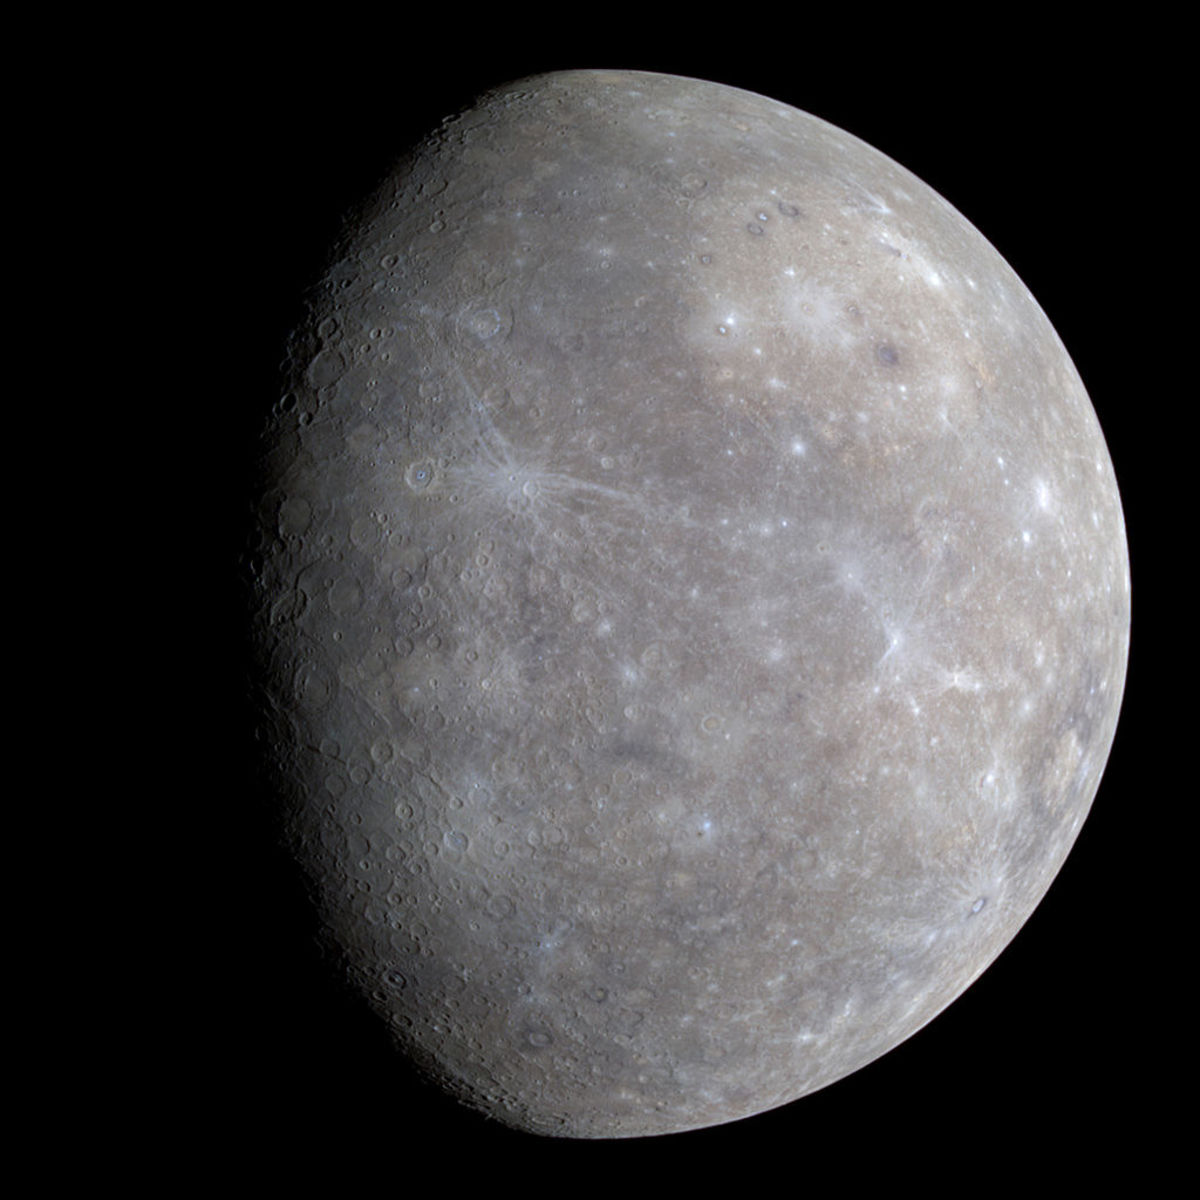 Planet Mercury (Image taken by MARINER)